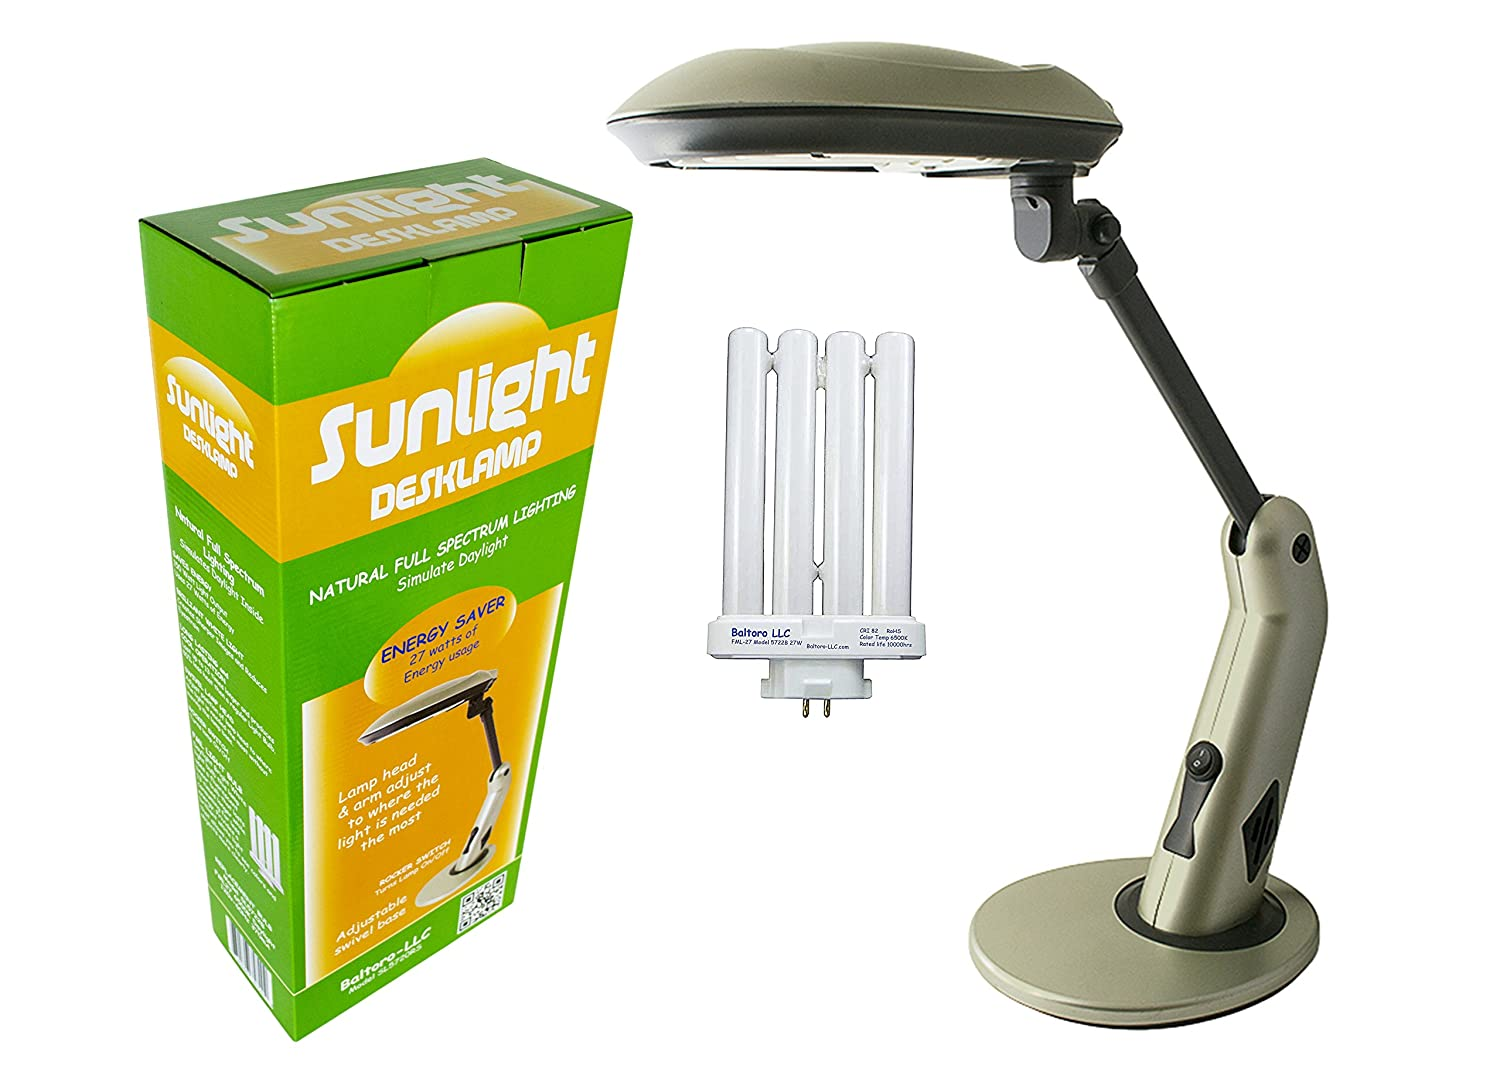 best carex day plus lamp light health sunlight on lamps brands classic therapy sad nocrop bright amazon